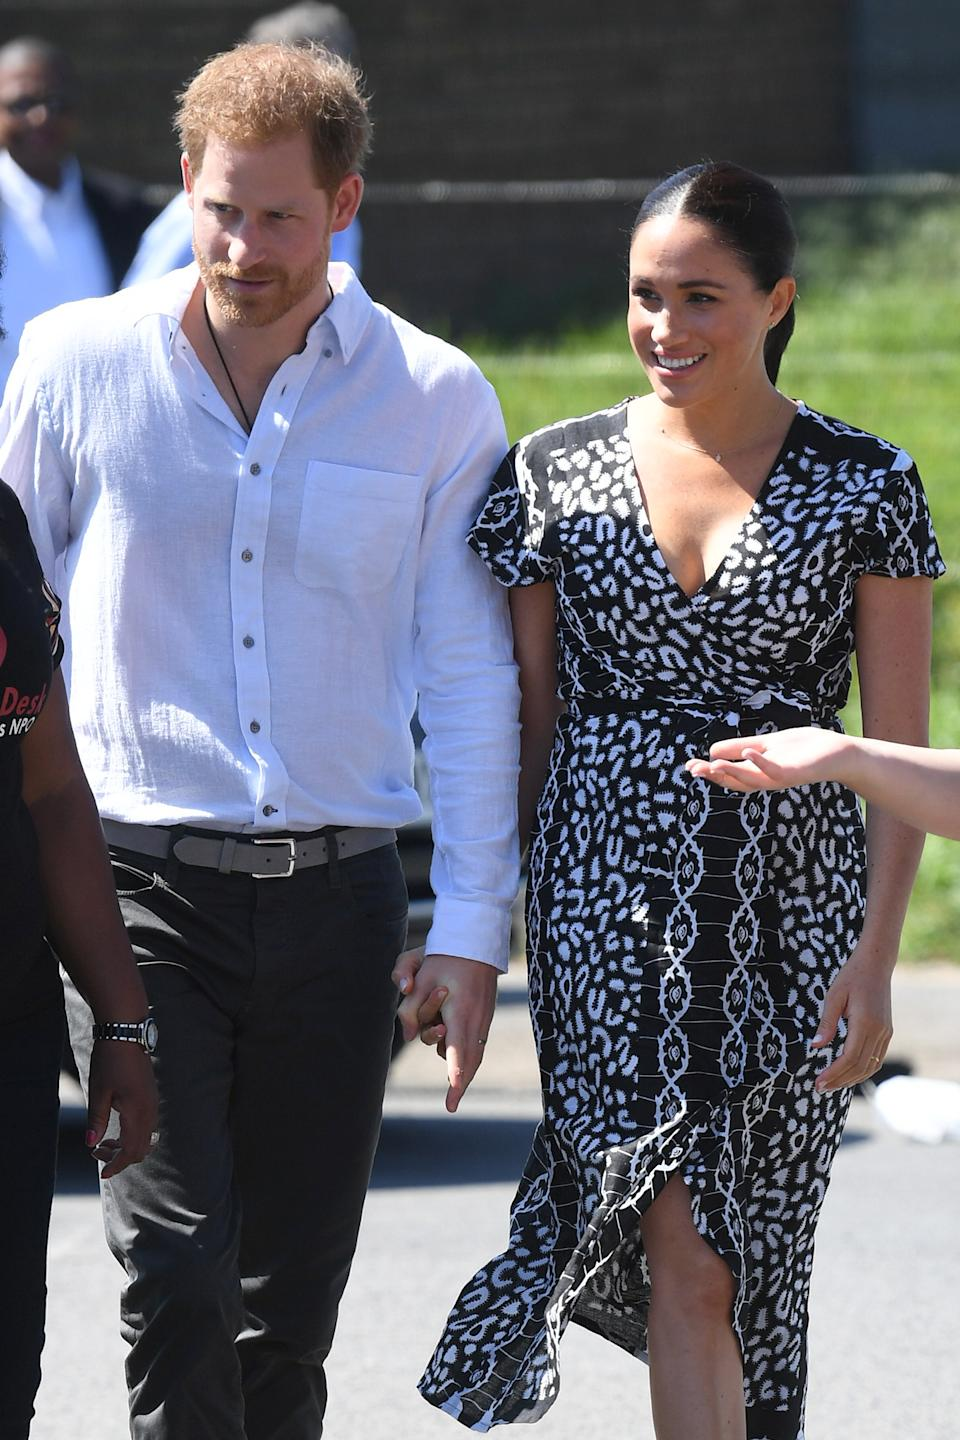 Prince Harry and Markle tour Cape Town. Image via Getty Images.